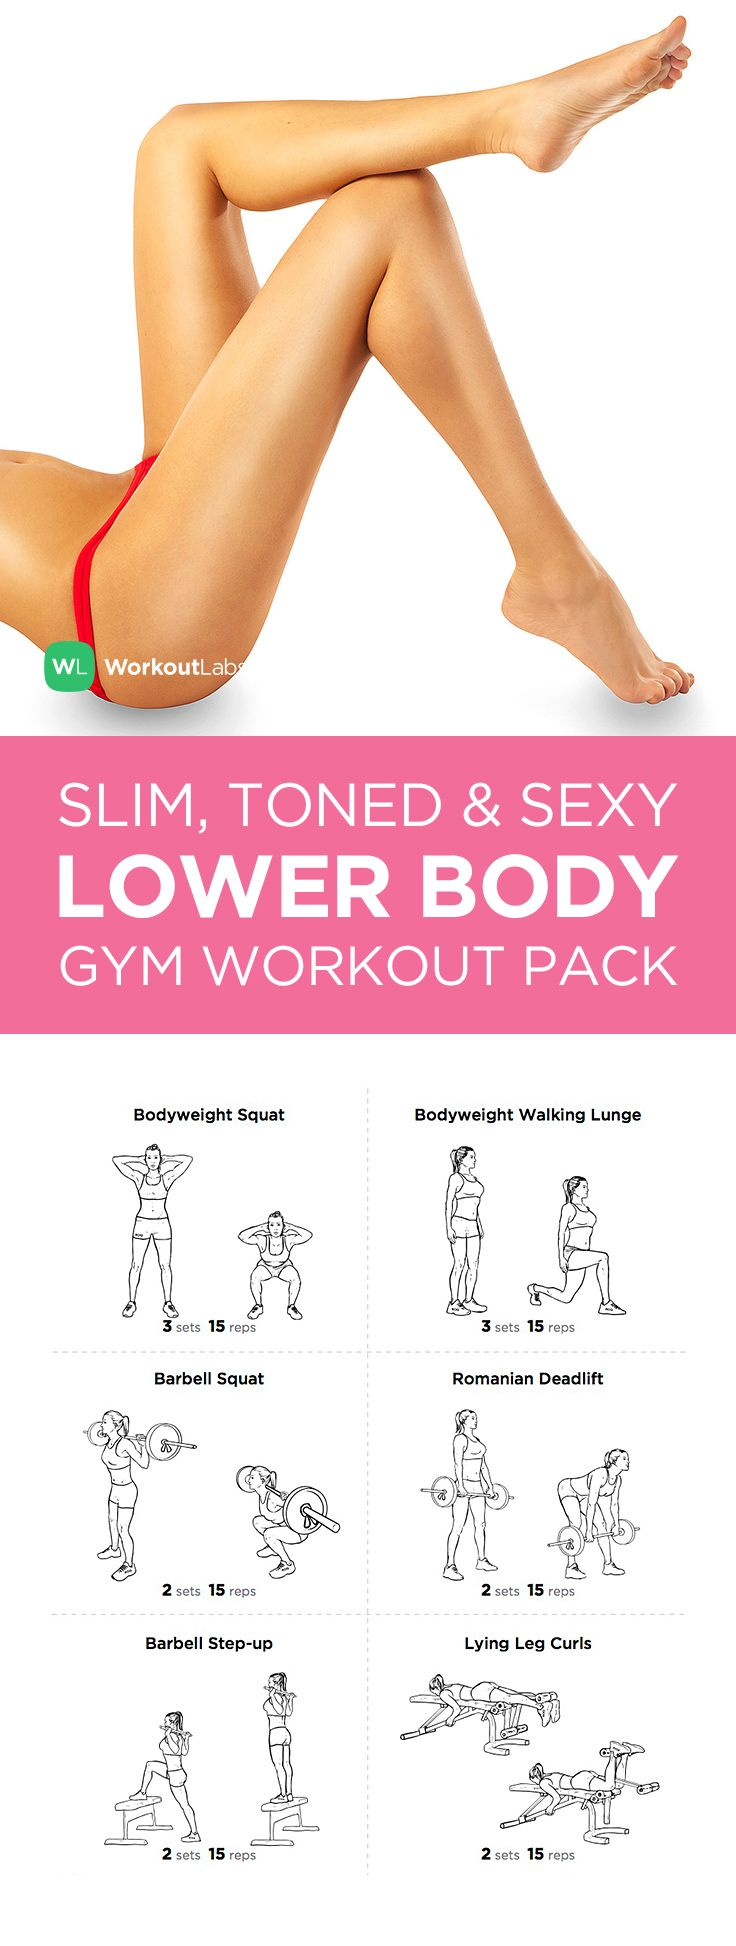 Slim, Toned and Sexy Lower Body Workout Pack for Women – visit https://WorkoutLabs.com/workout-packs/slim-toned-and-sexy-lower-body-workout-pack-for-women/ to download!